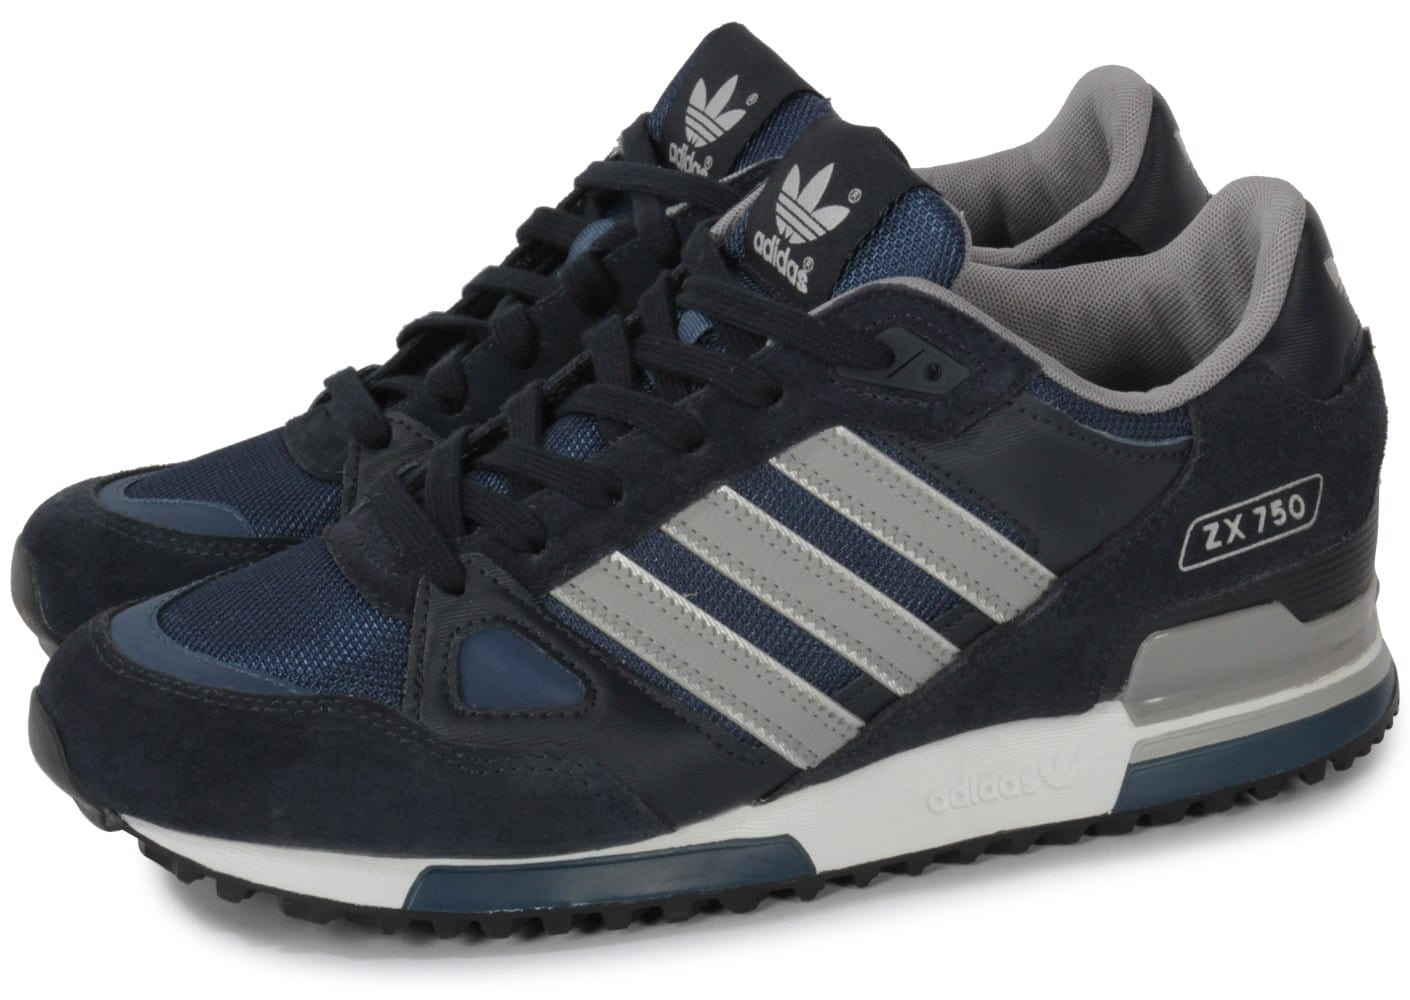 adidas superstar bleu marine, adidas Chaussures Baskets ZX